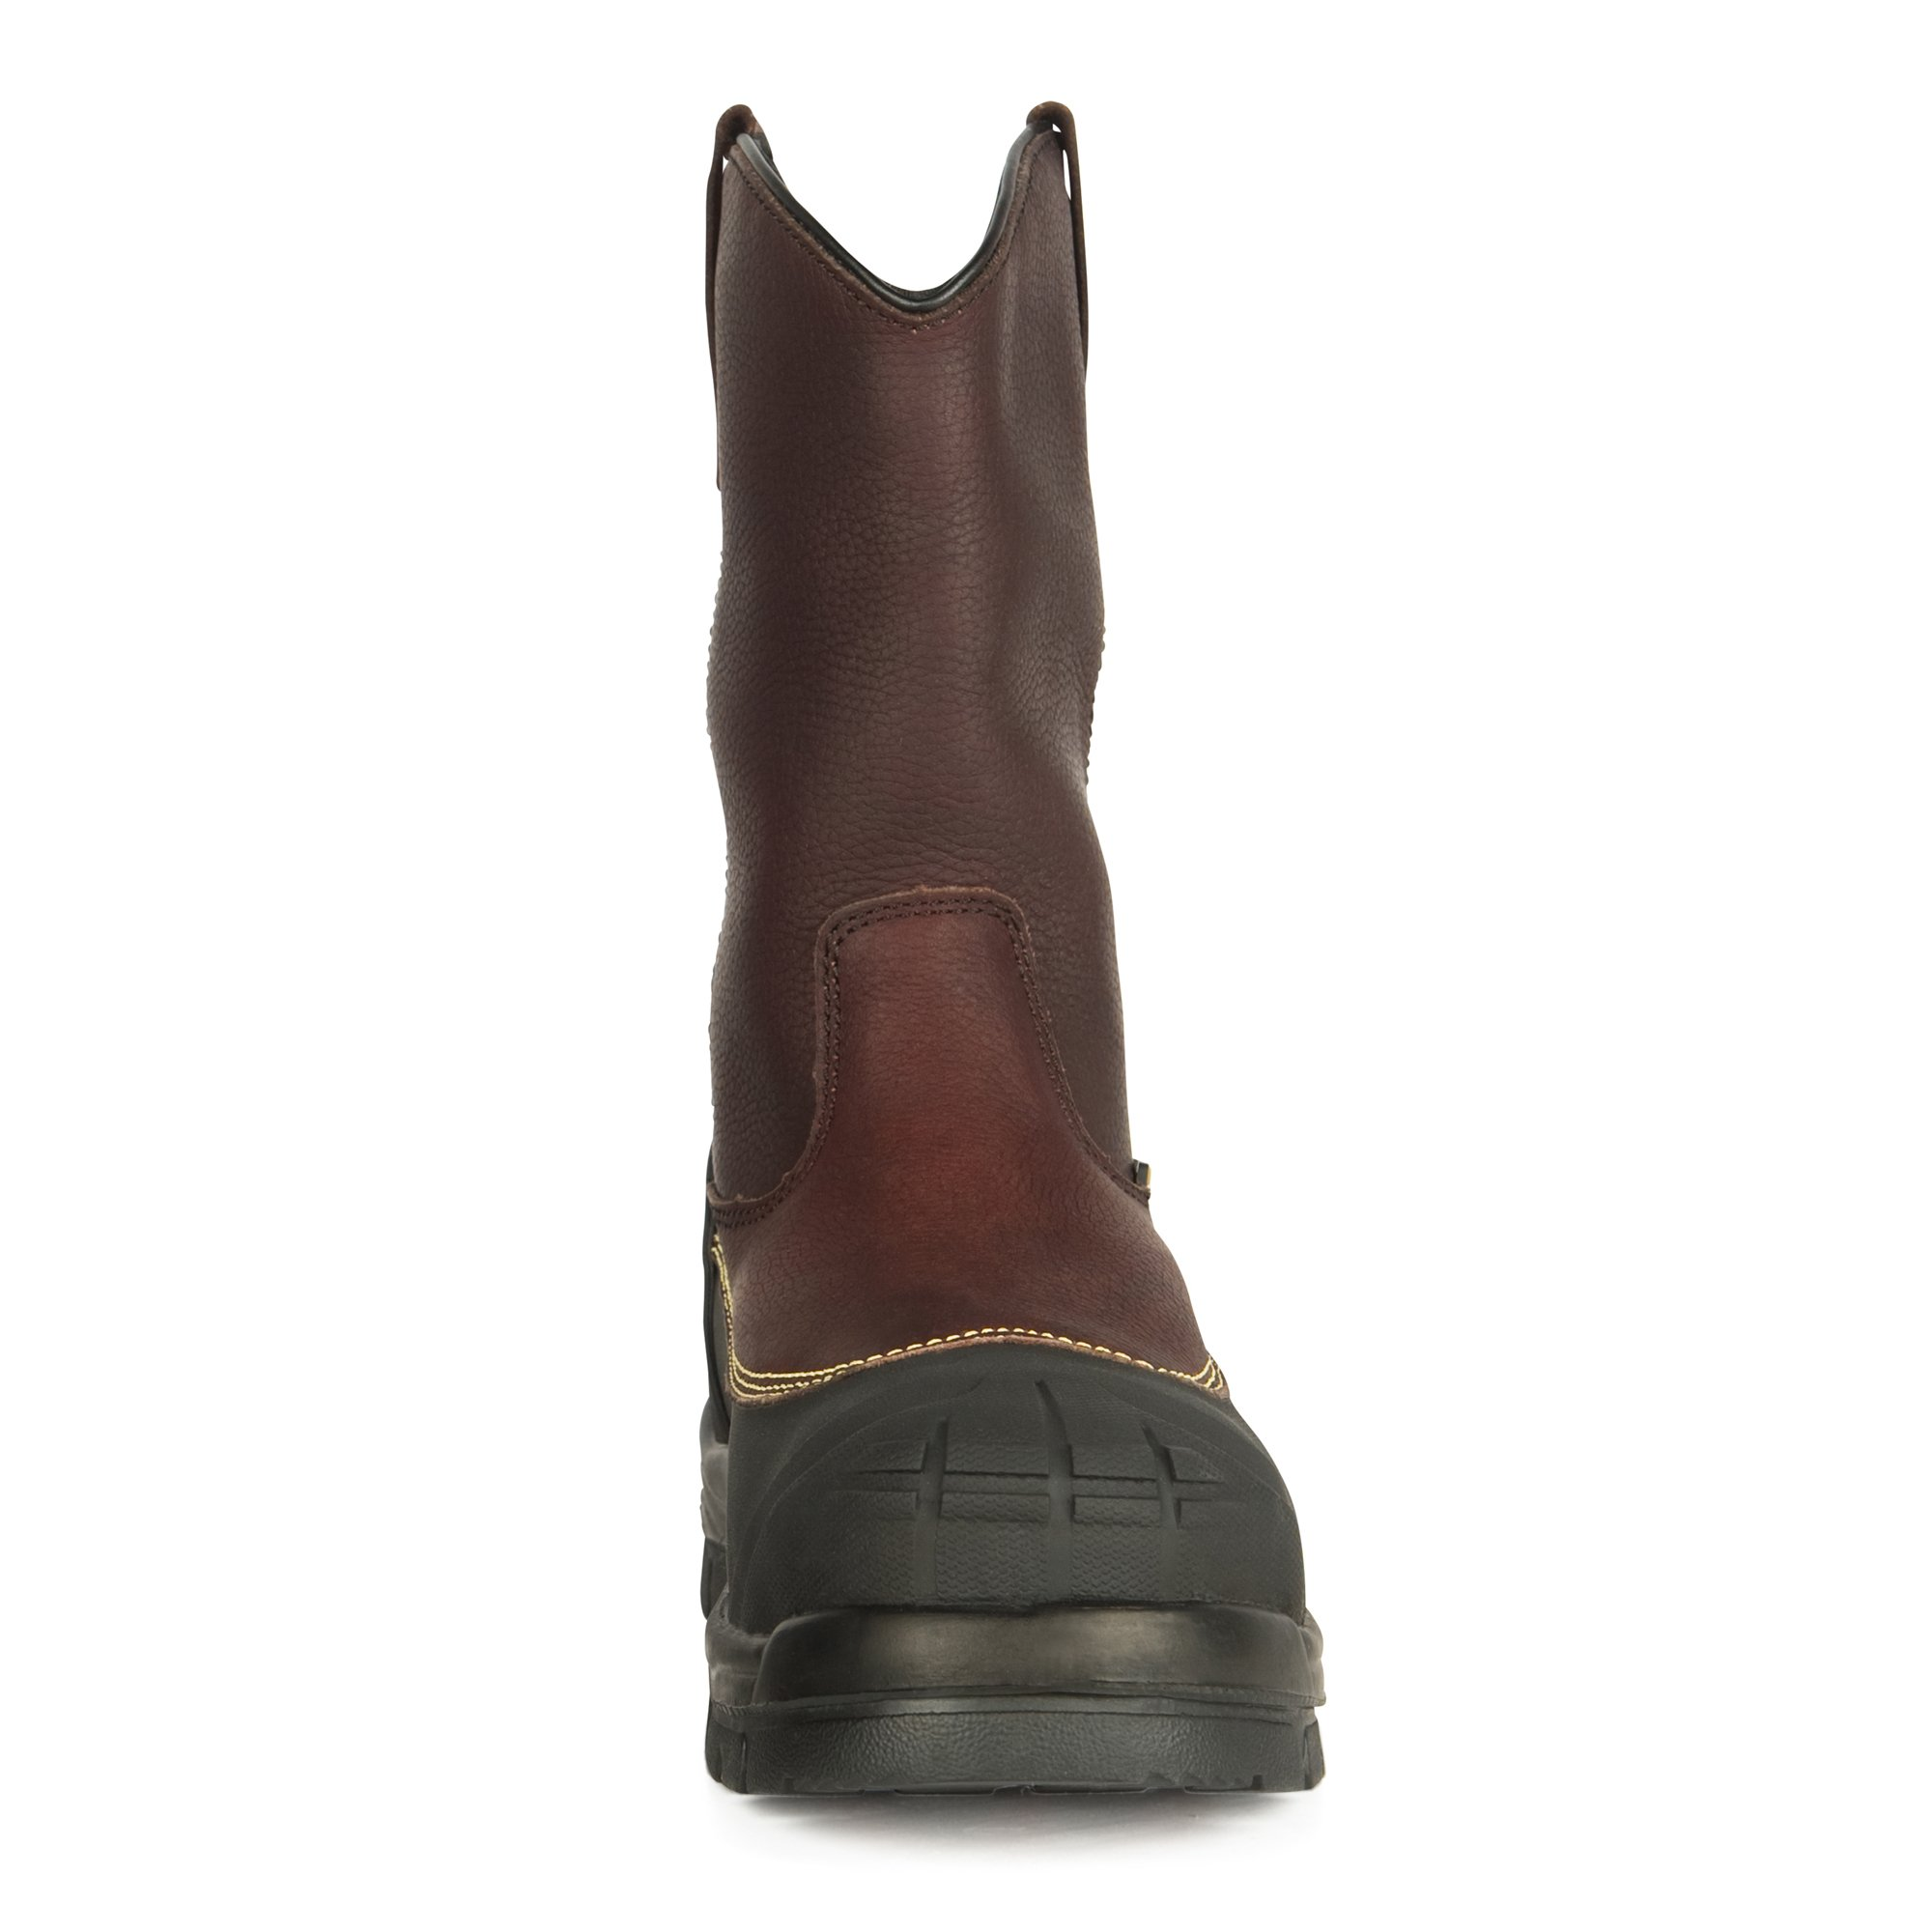 Oliver 65 Series 10'' Leather Chemical-Resistant Puncture-Resistant Steel Toe Pull-On Men's Metatarsal Boots, Brown (65396) by Honeywell (Image #5)